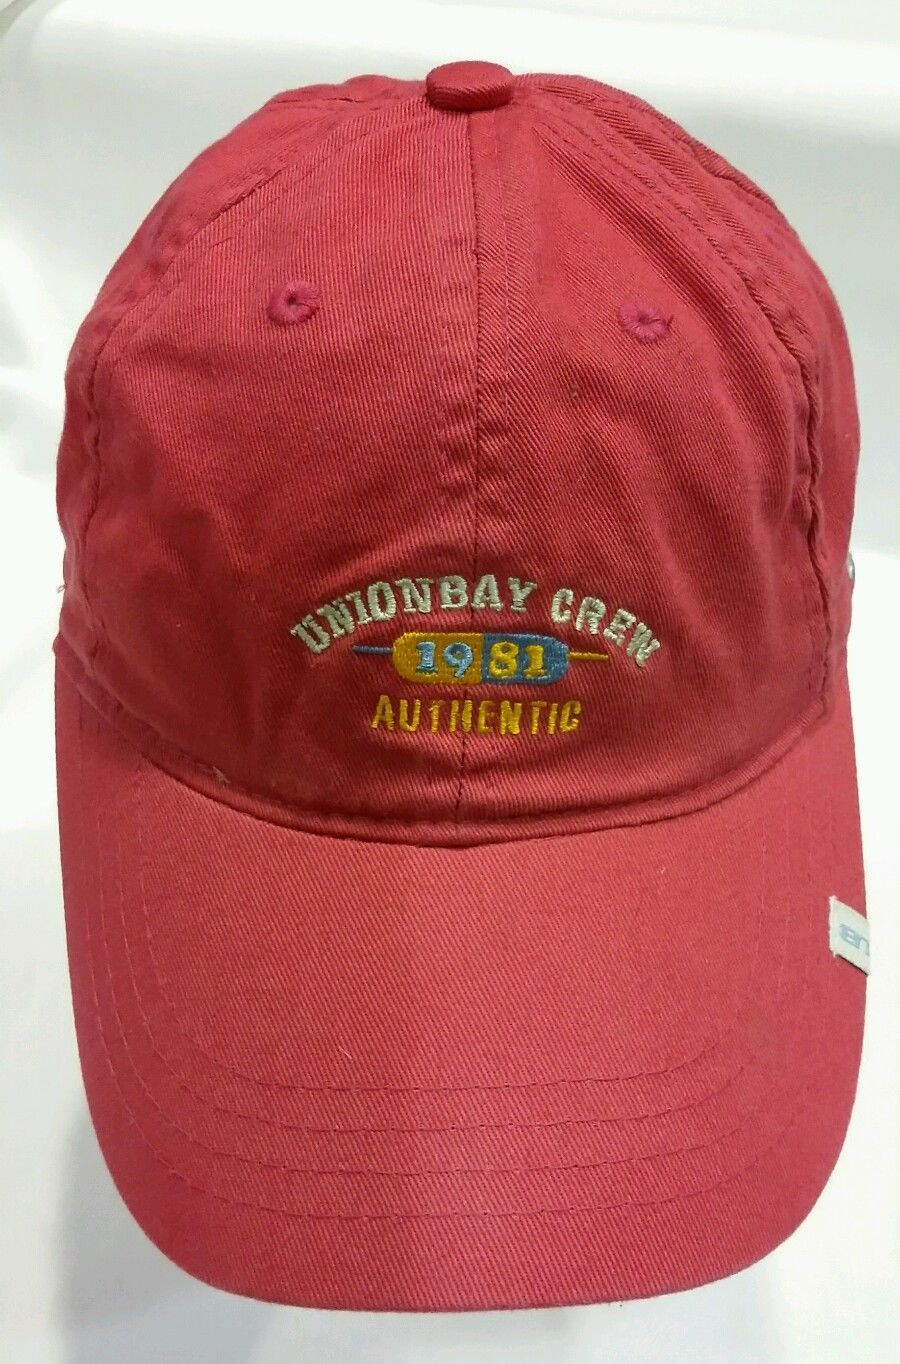 4a99c6db7 Unionbay Crew USA 1981 Authentic Youth Kids and 50 similar items